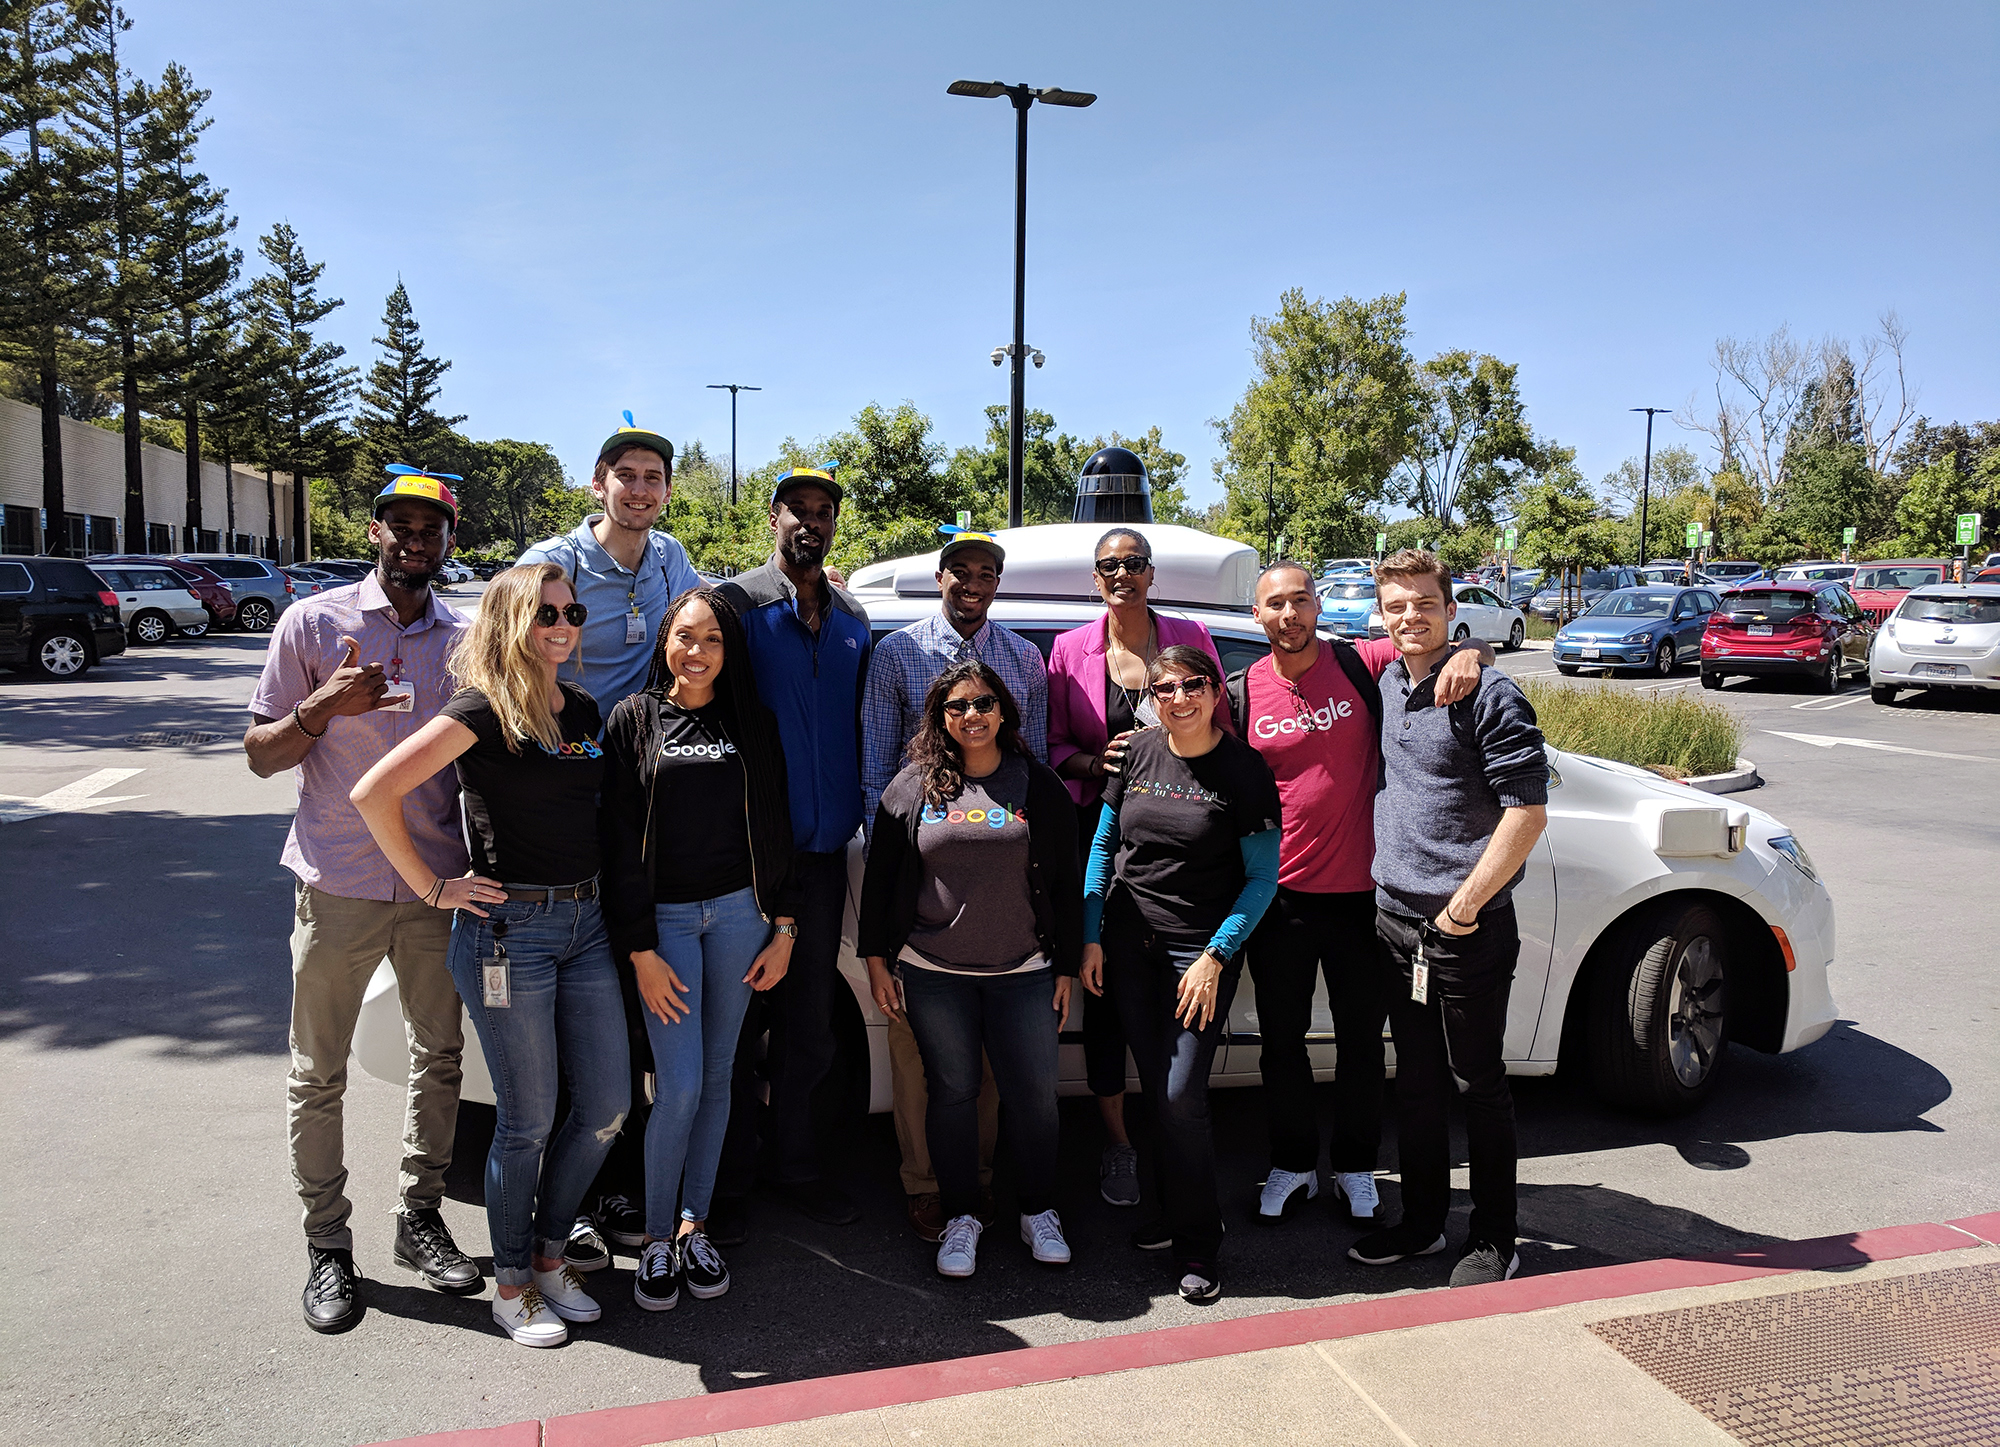 Off the court: how the NBA spent a day at Google